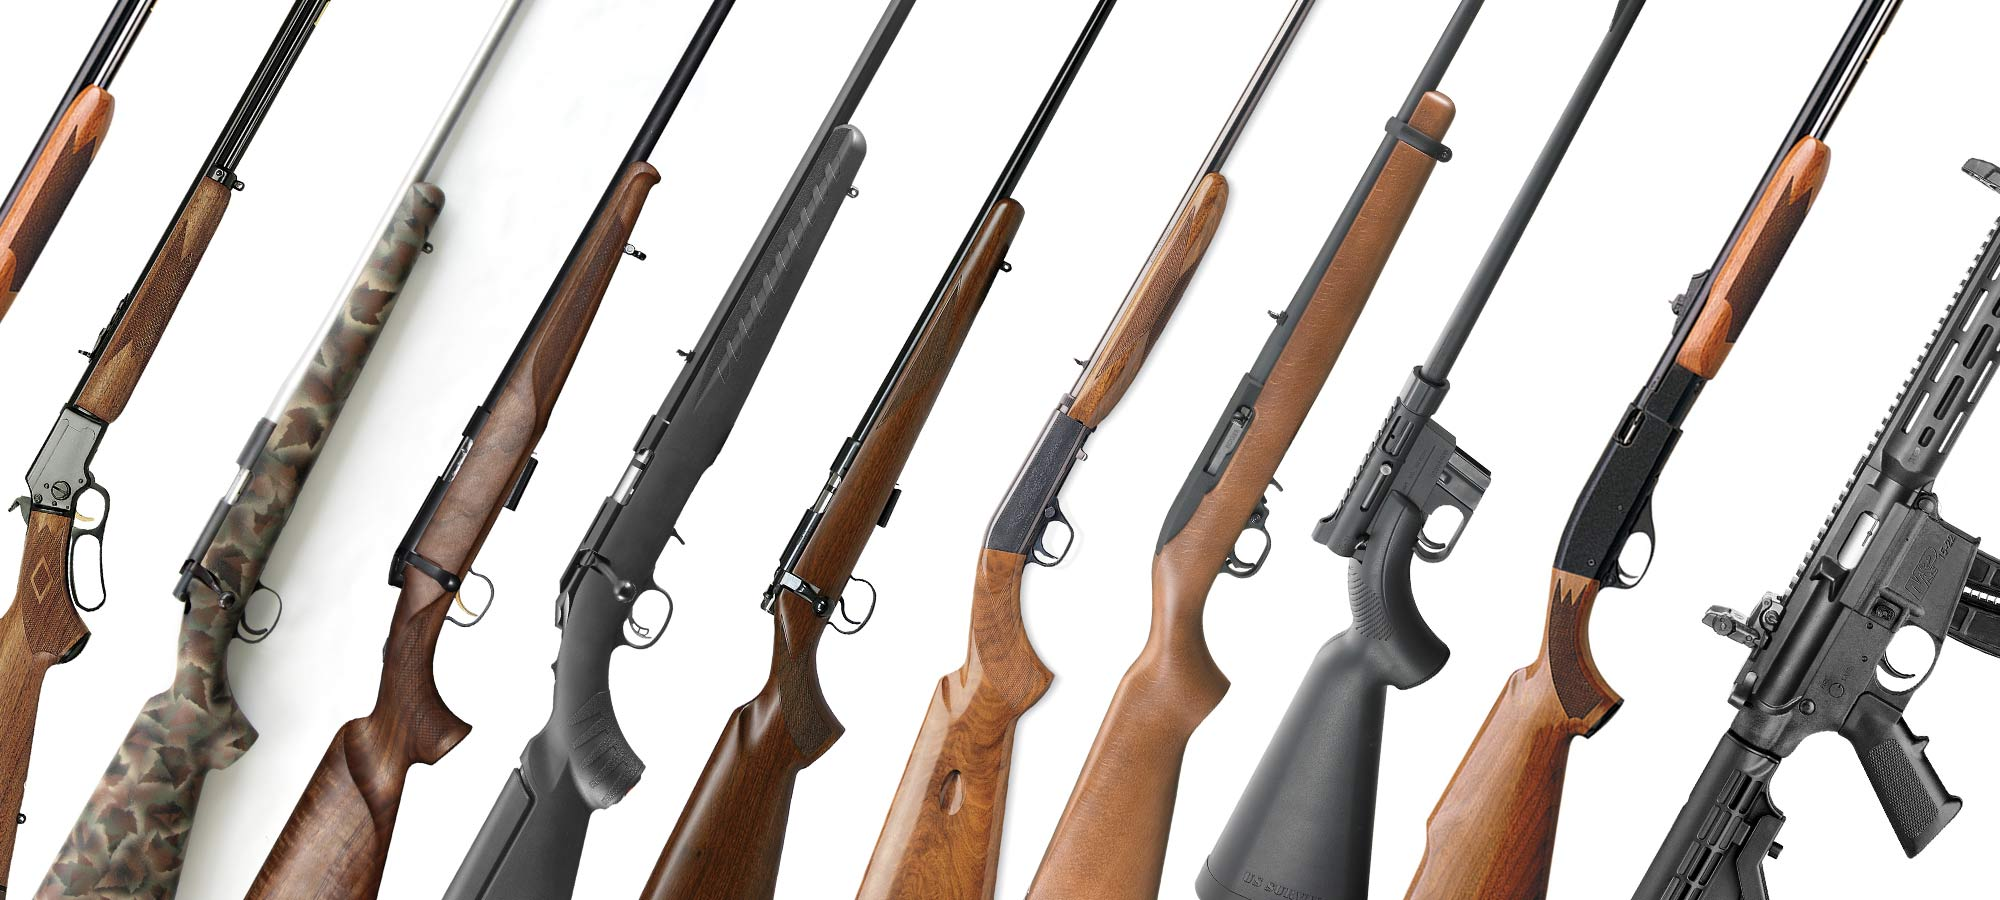 The 10 Best Rimfire Rifles | Outdoor Life